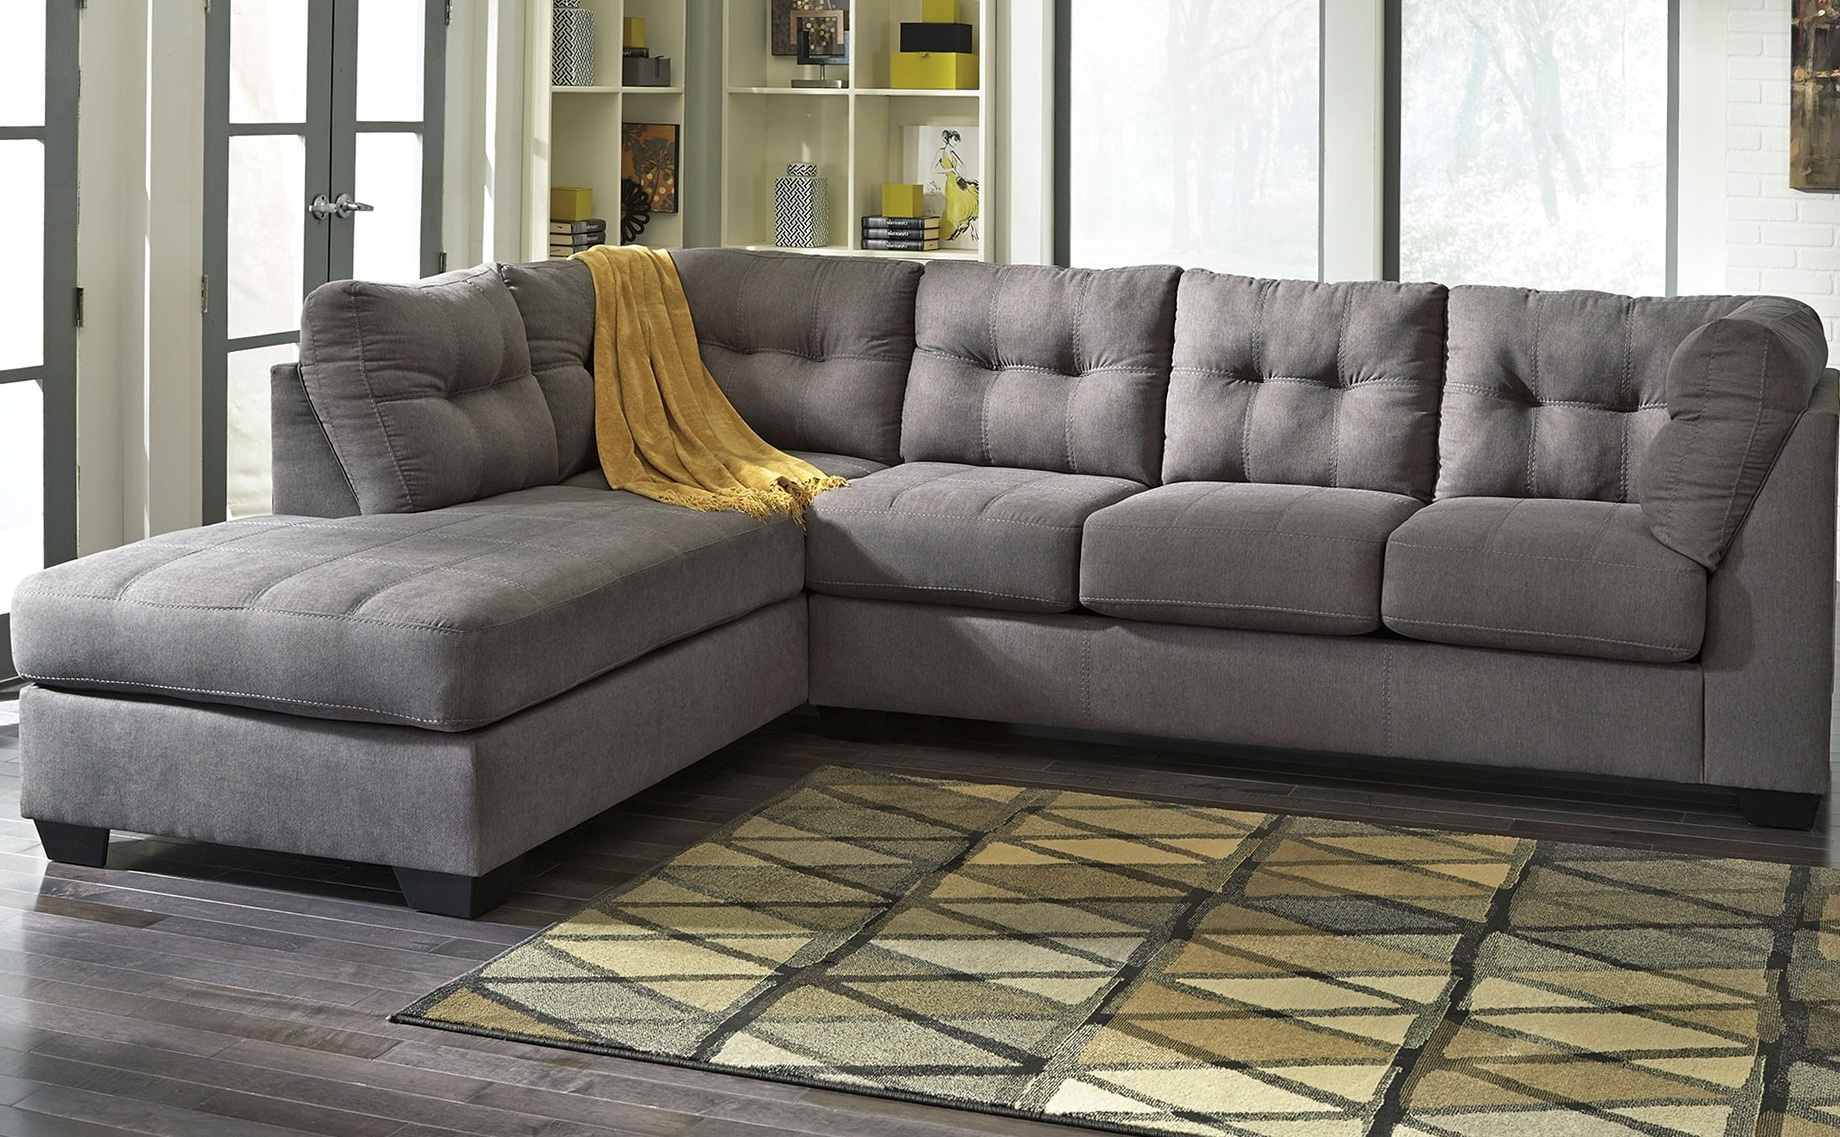 Preferred Sofa ~ Awesome Grey Sectional Sofa Perfect Grey Sectional Sofa Within Sofas With Chaise Lounge (View 7 of 15)